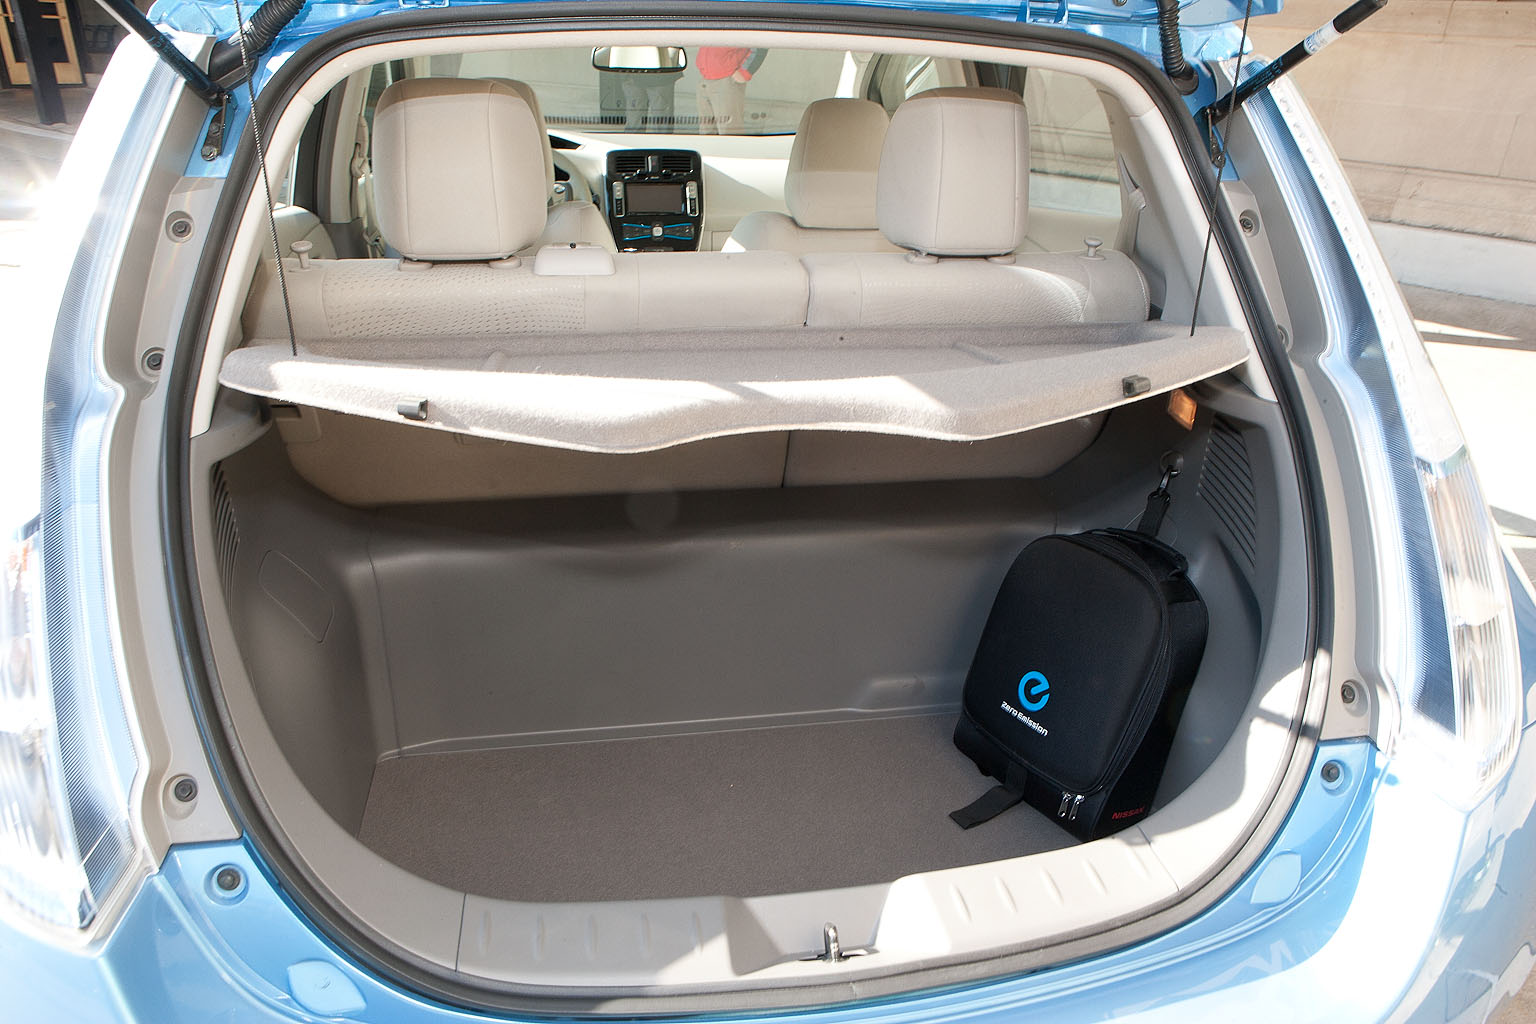 Nissan Leaf Lease Bay Area >> No charge cord with car - Page 2 - My Nissan Leaf Forum